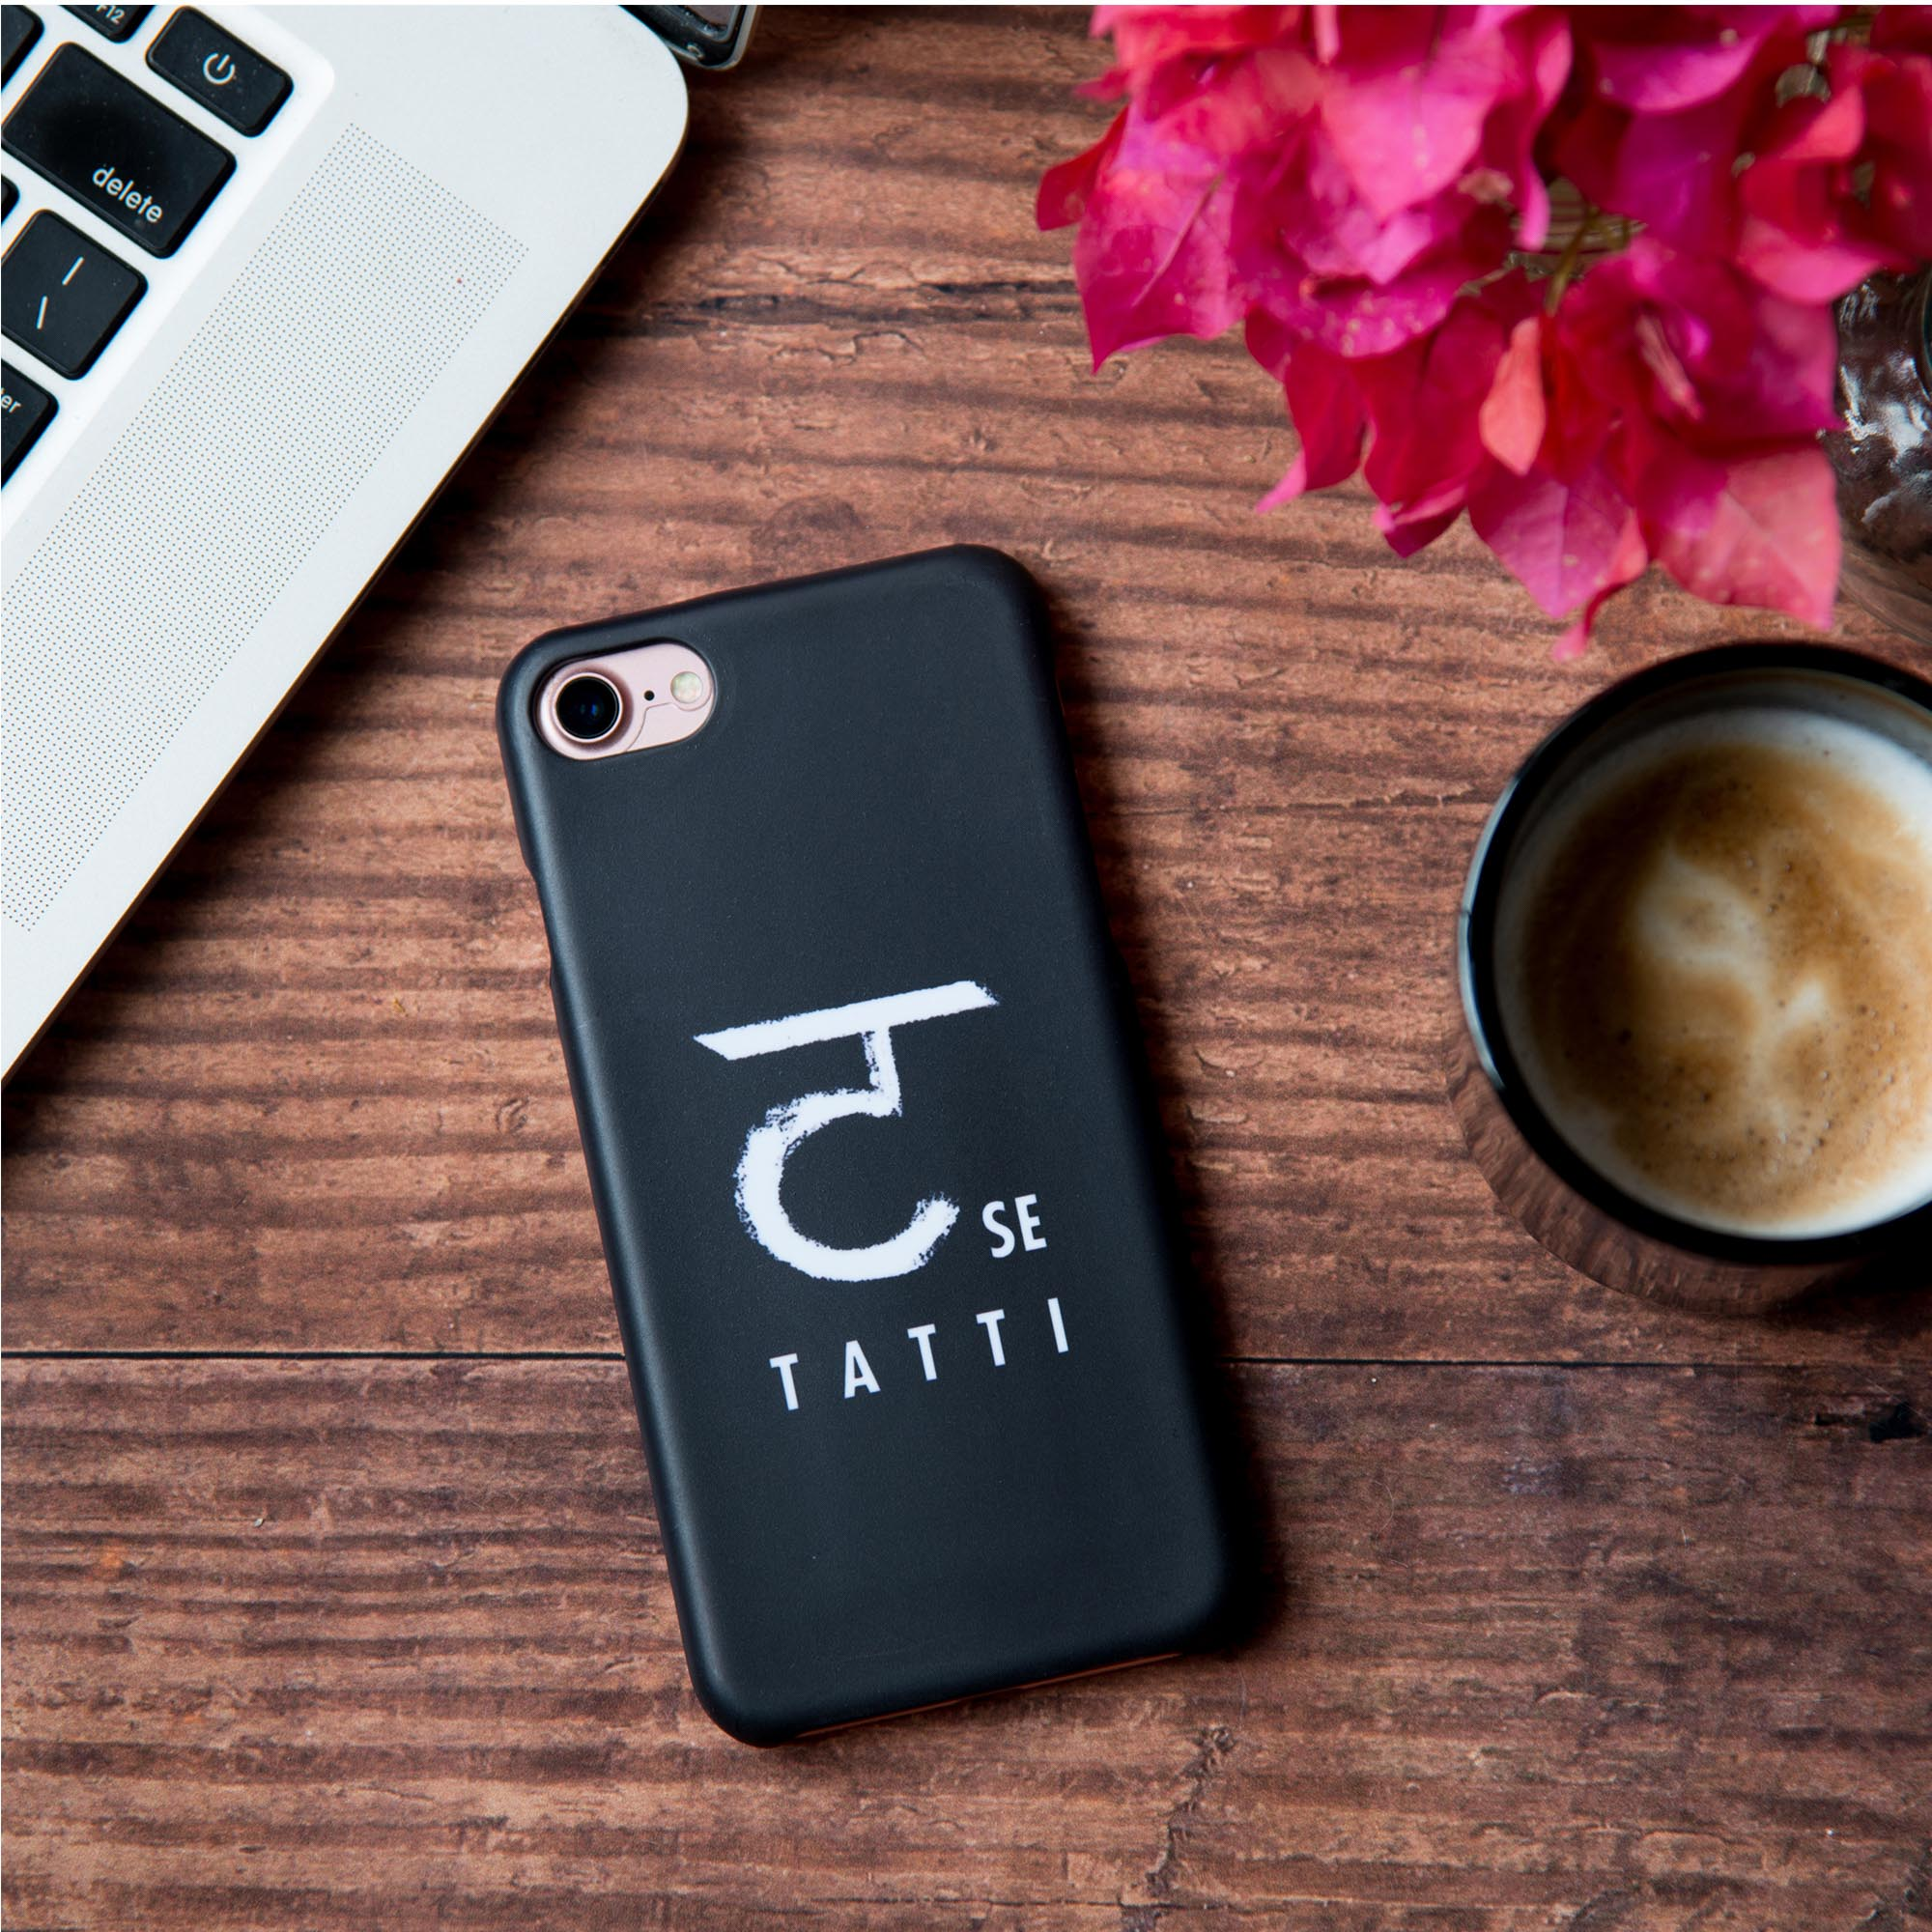 Tatti Iphone 7 Cover